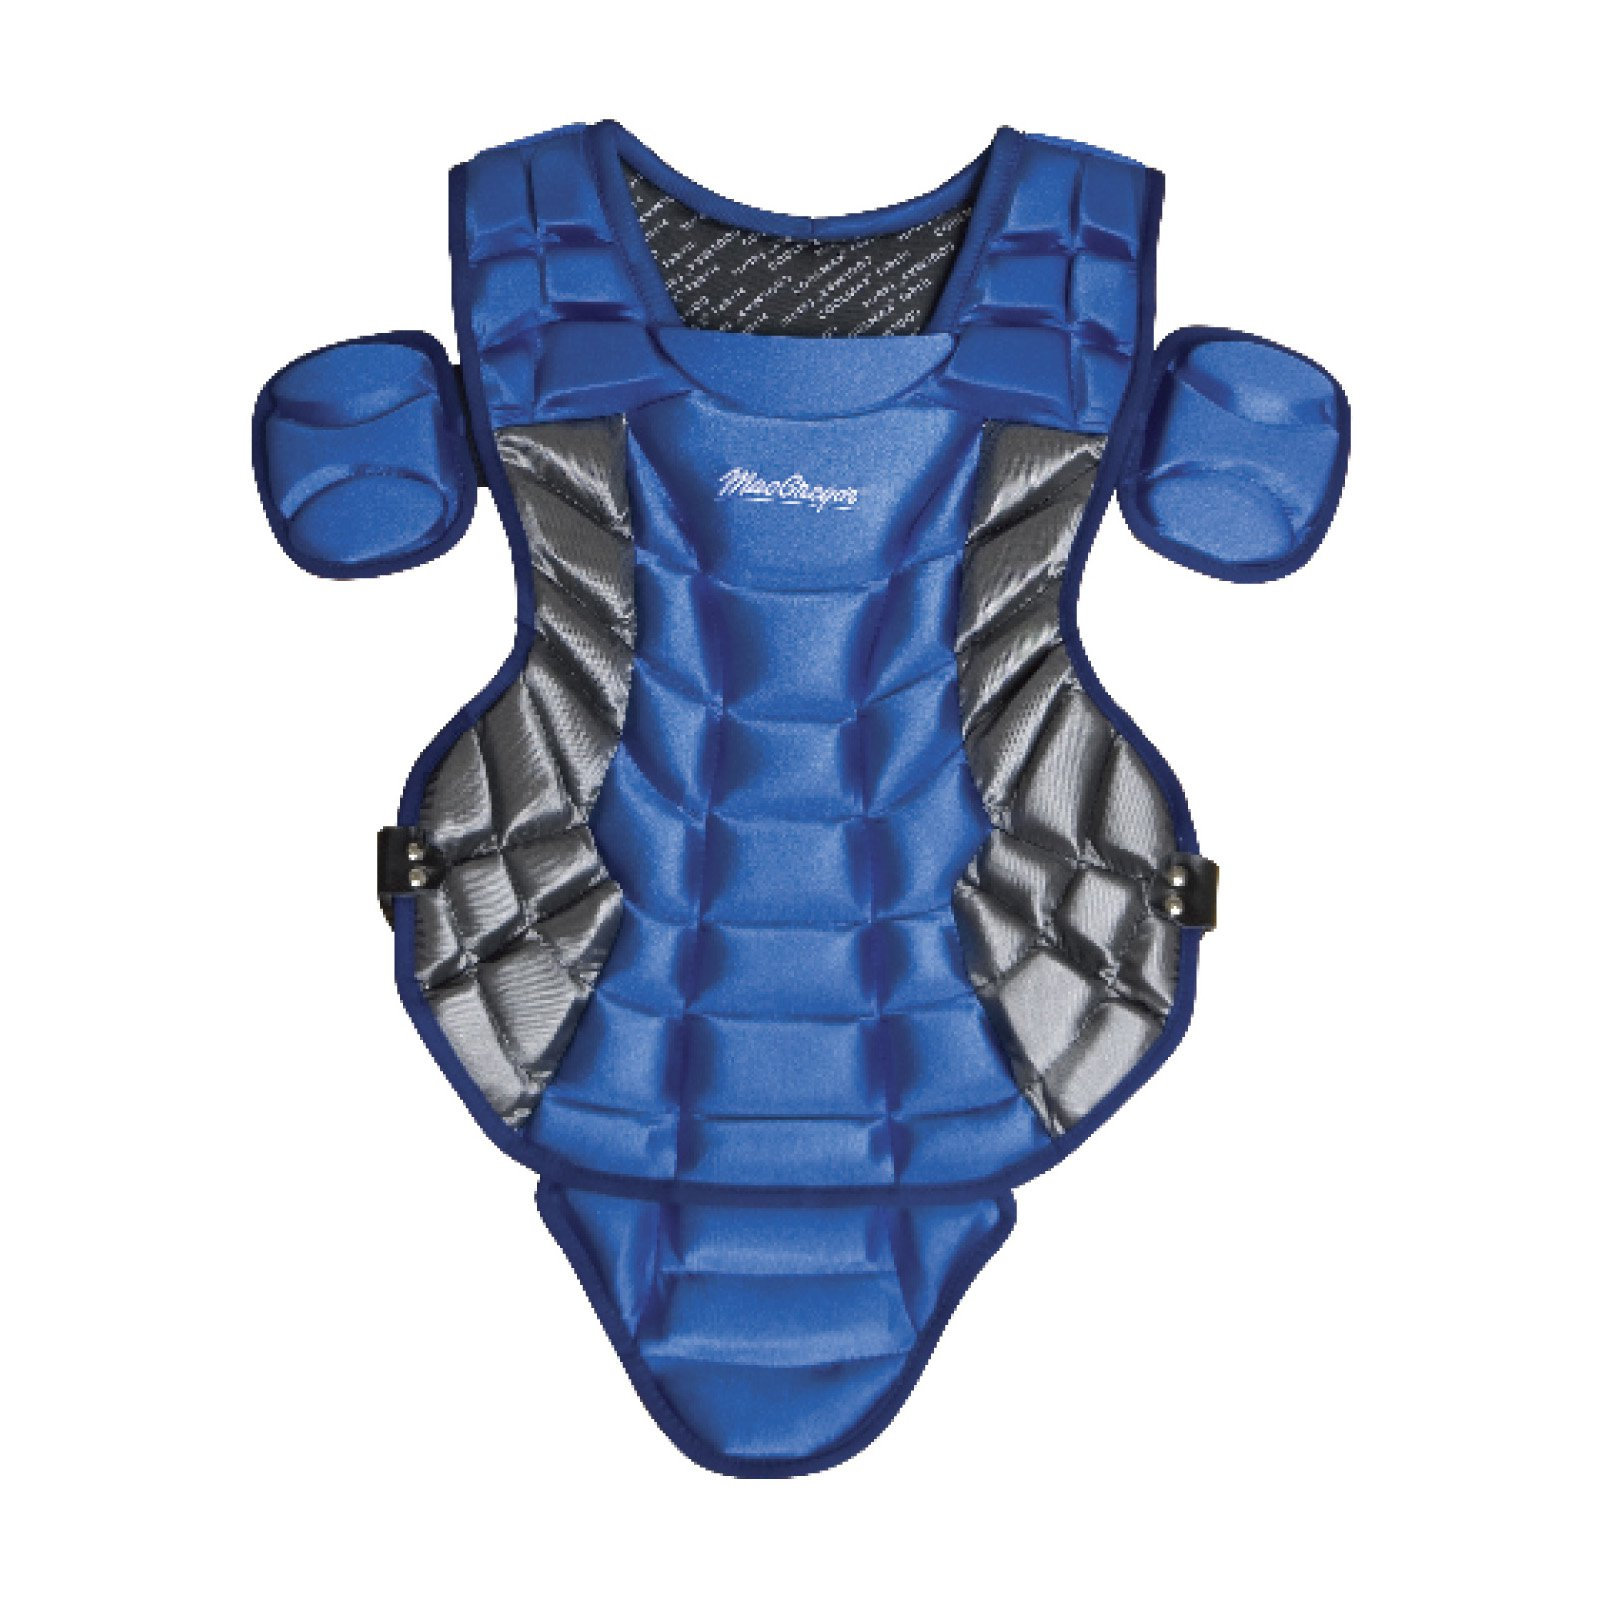 MacGregor Mac B73 Prep Chest Protector